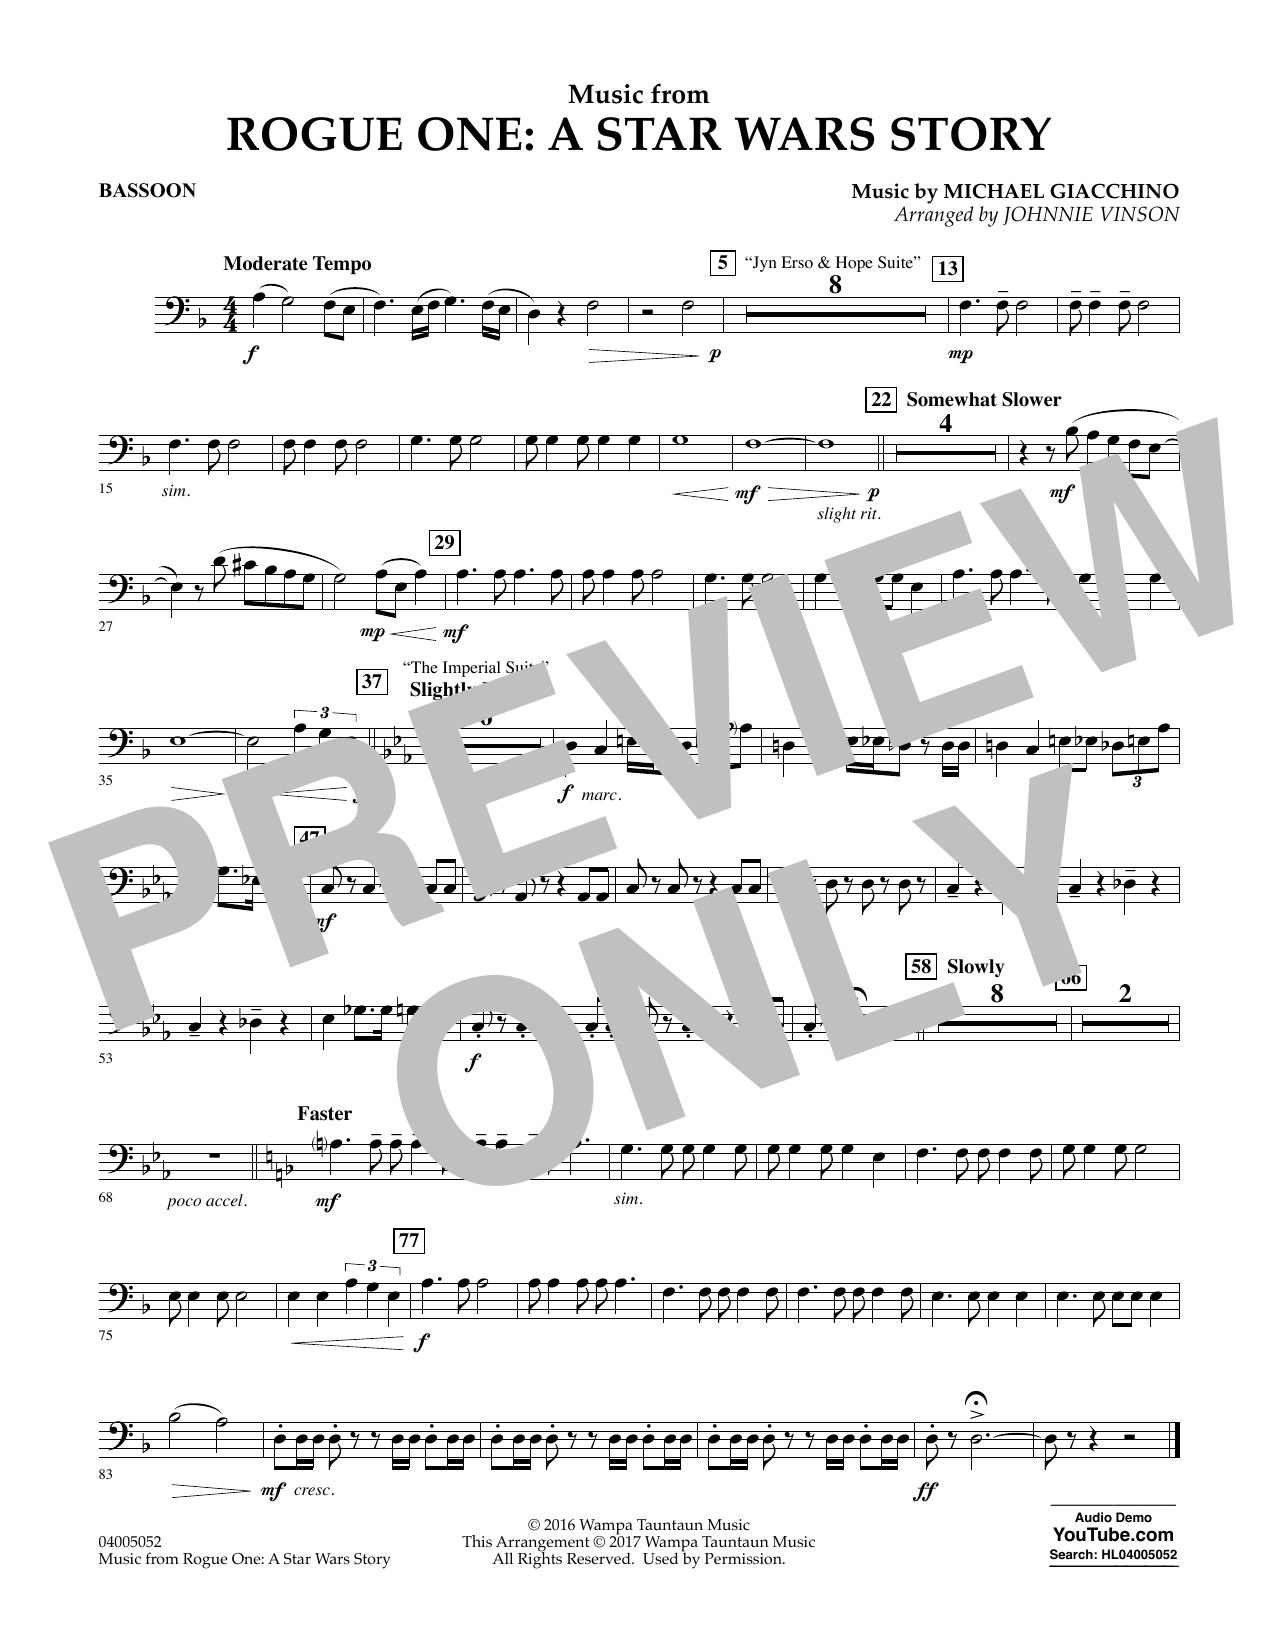 Music from Rogue One: A Star Wars Story - Bassoon Partition Digitale